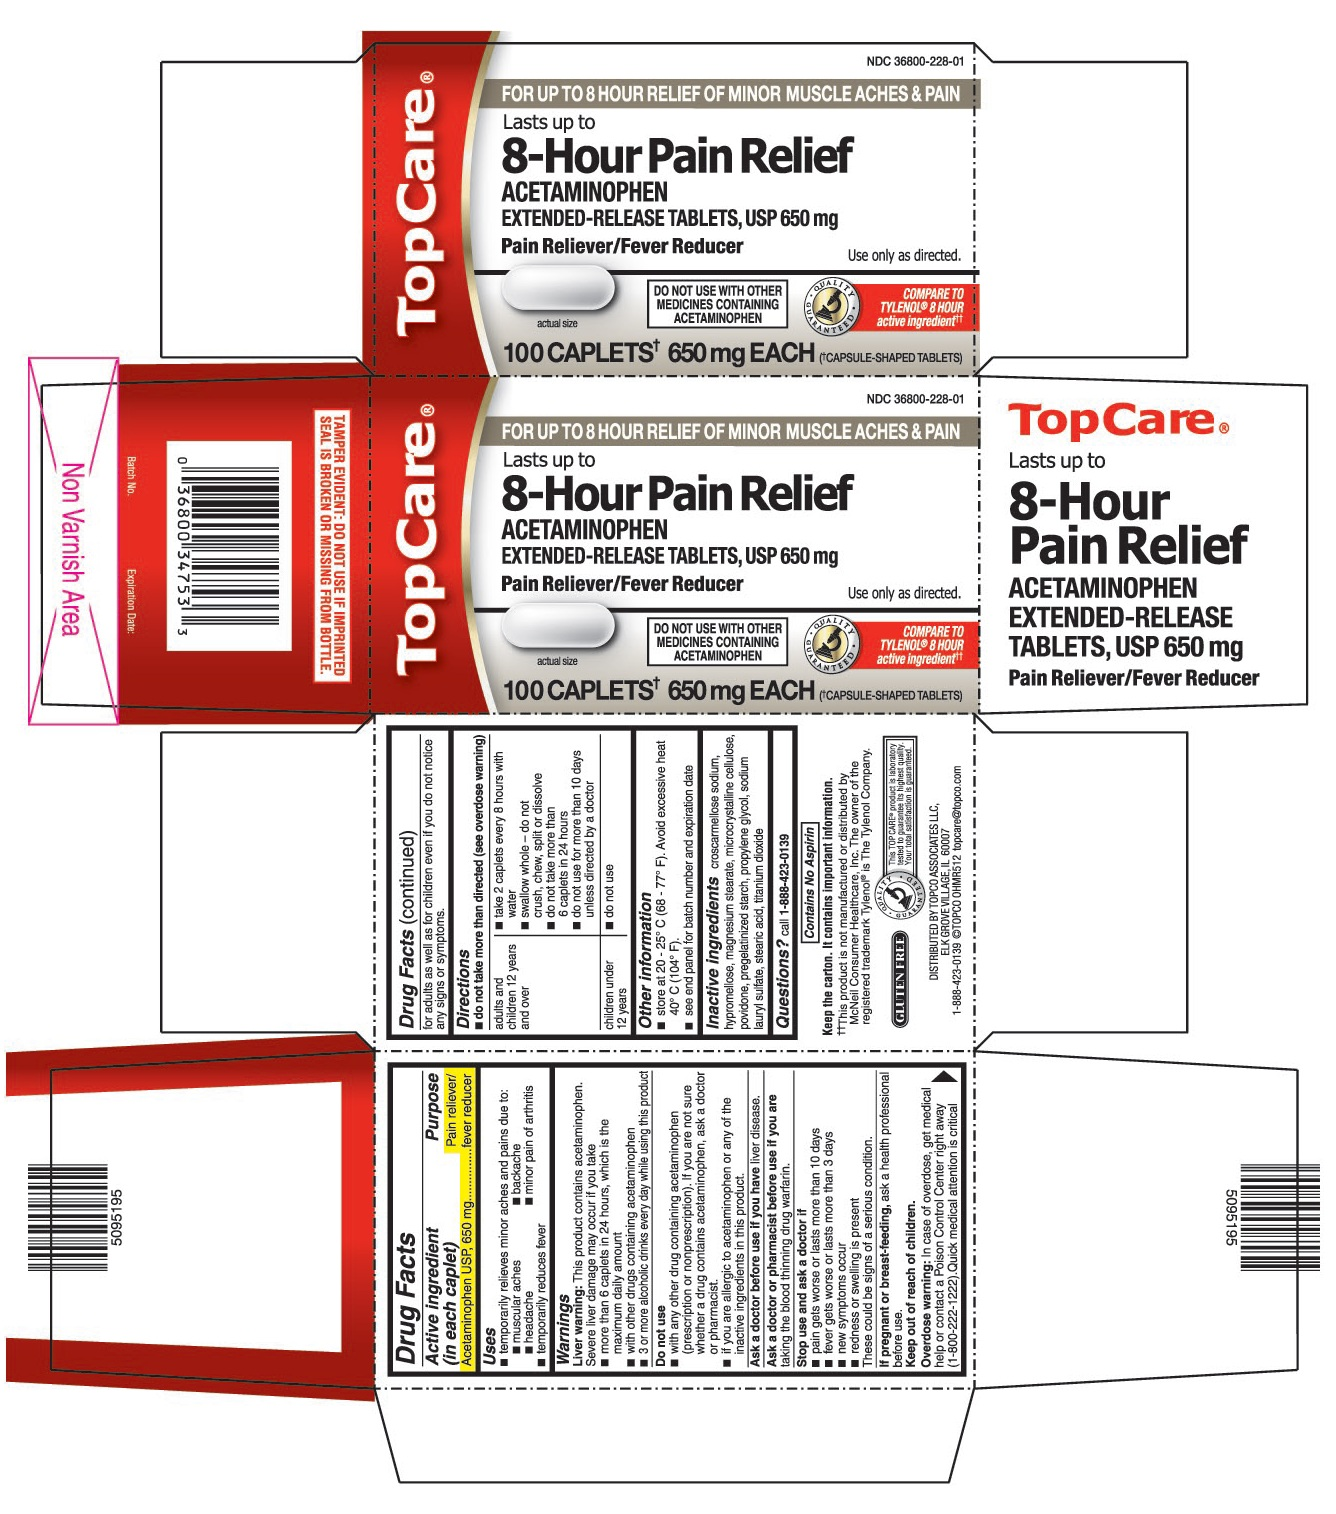 This is the 100 count bottle carton label for Topco Acetaminophen extended-release tablets, USP 650 mg.